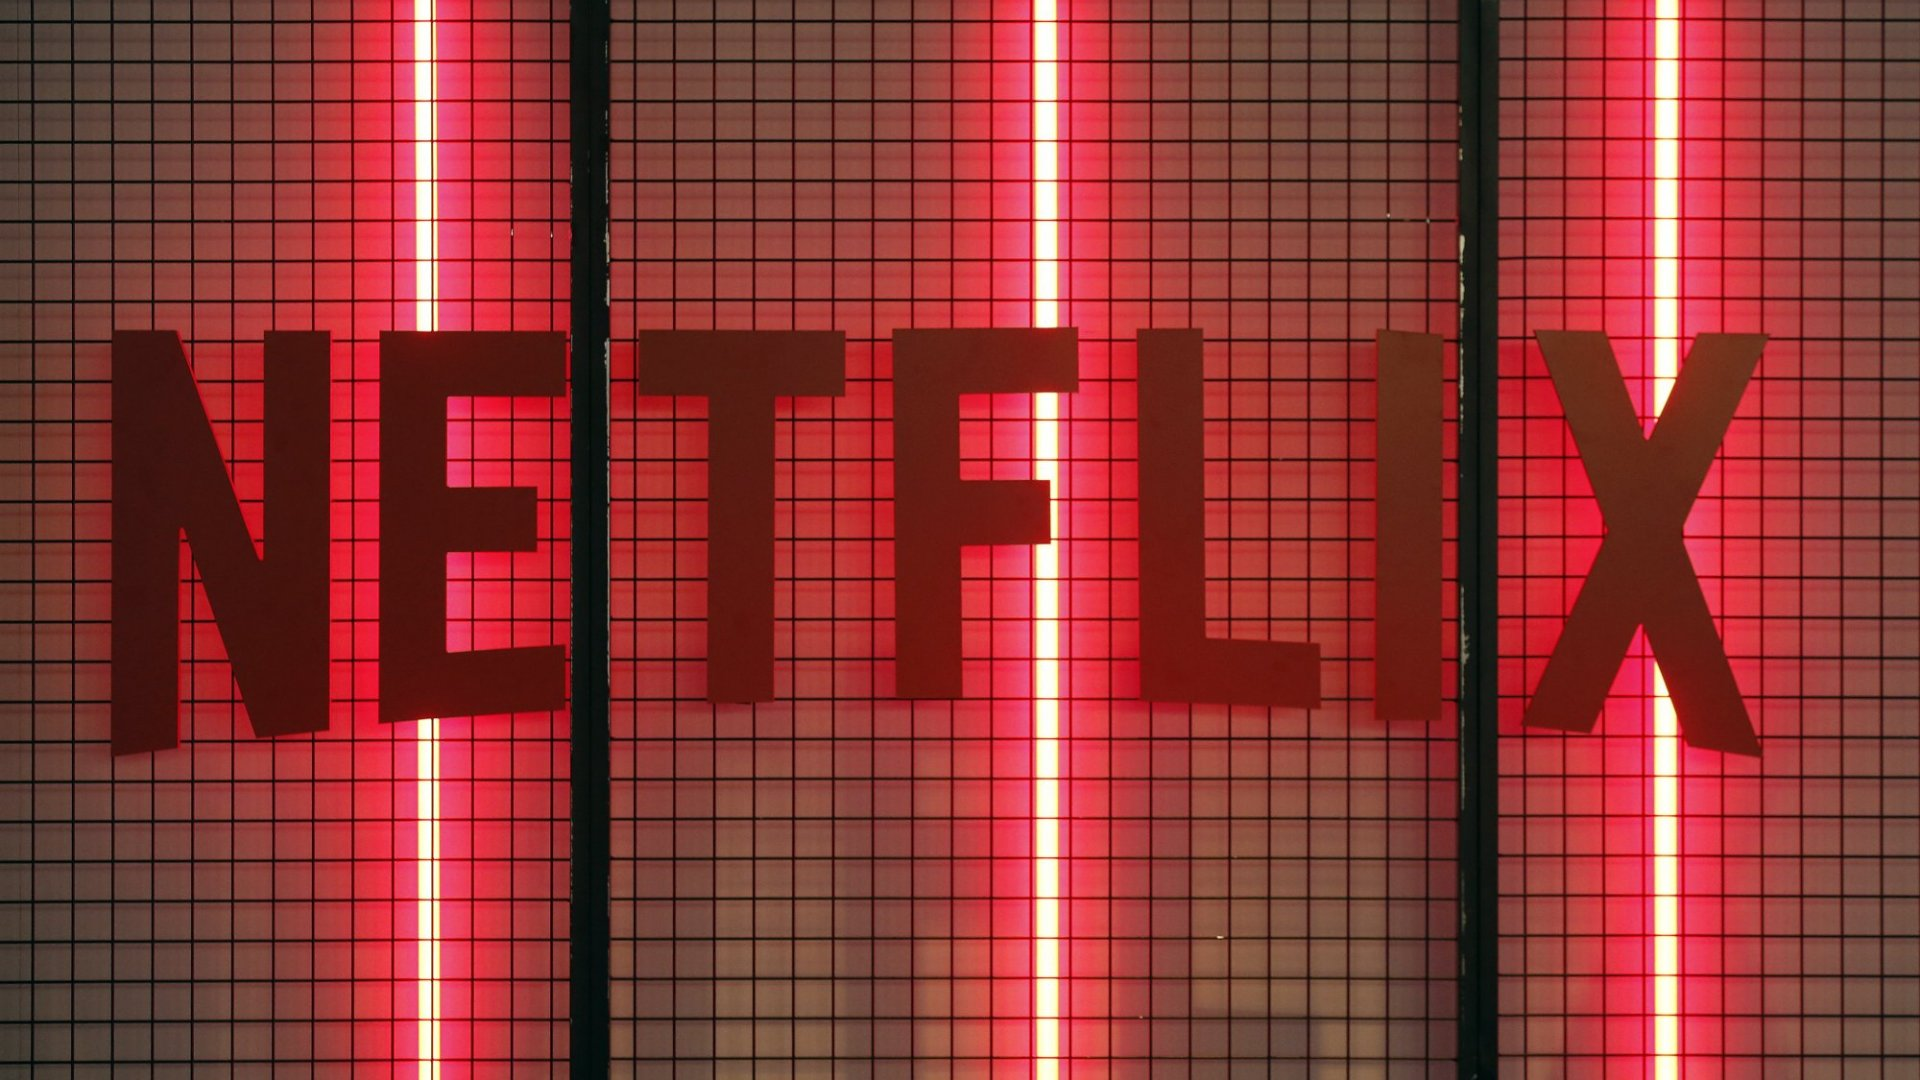 Netflix Just Made a Smart, Easy Change. Your Business Should Copy It